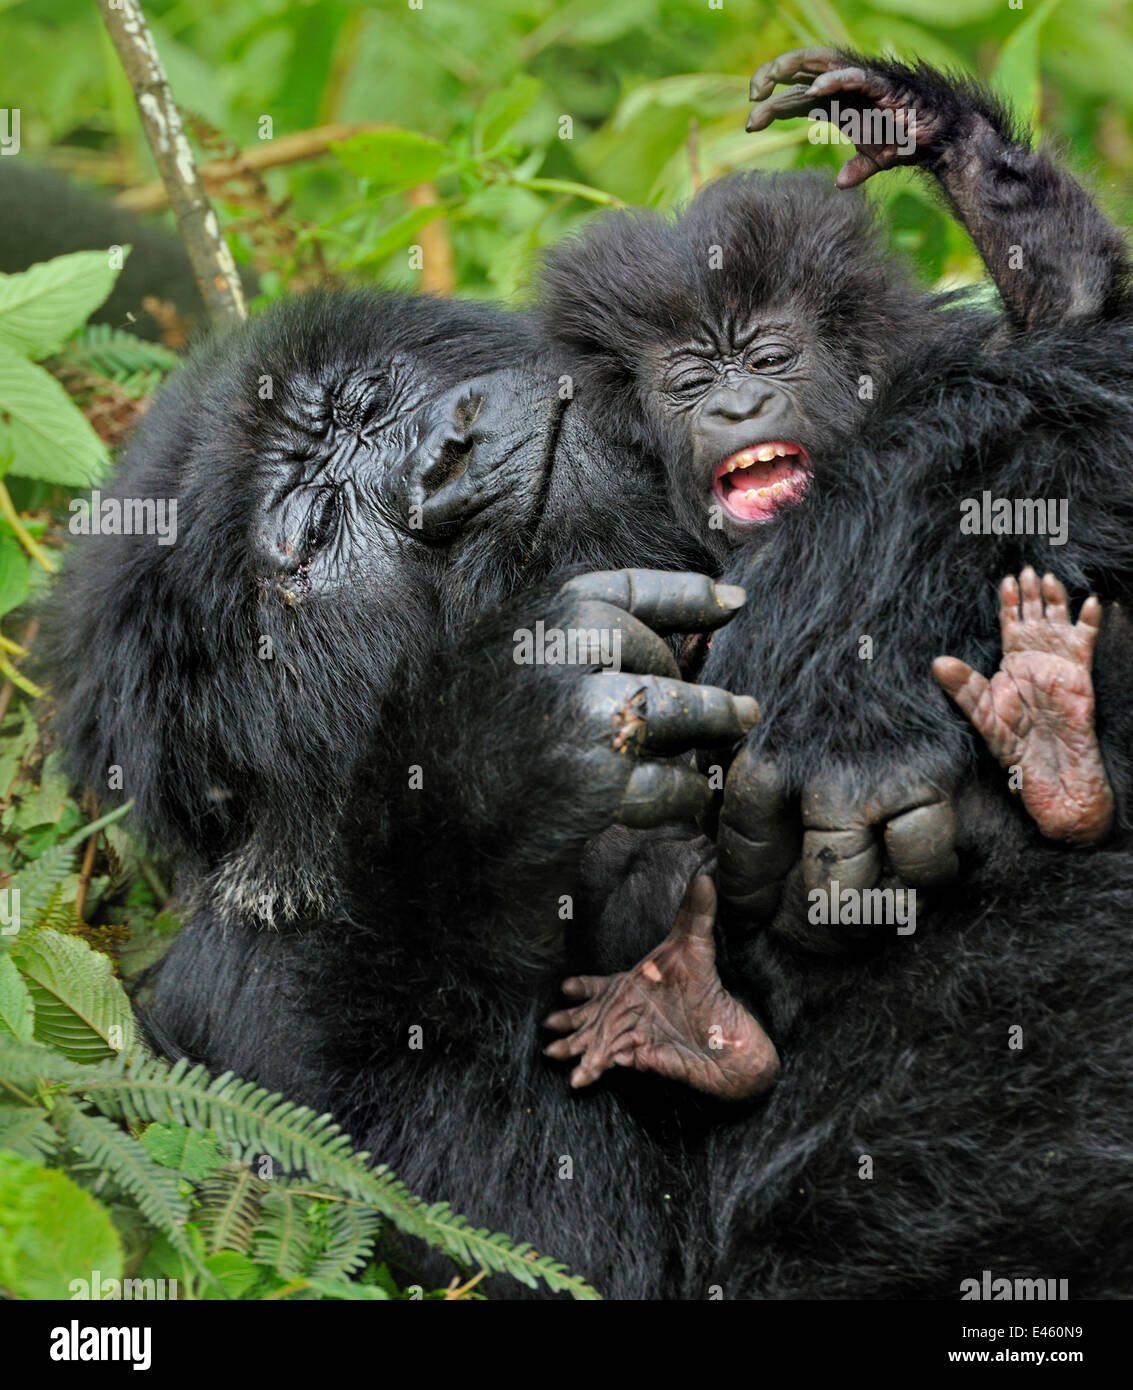 Mountain Gorilla (Gorilla beringei) adult playing with an infant. Rwanda, Africa - Stock Image